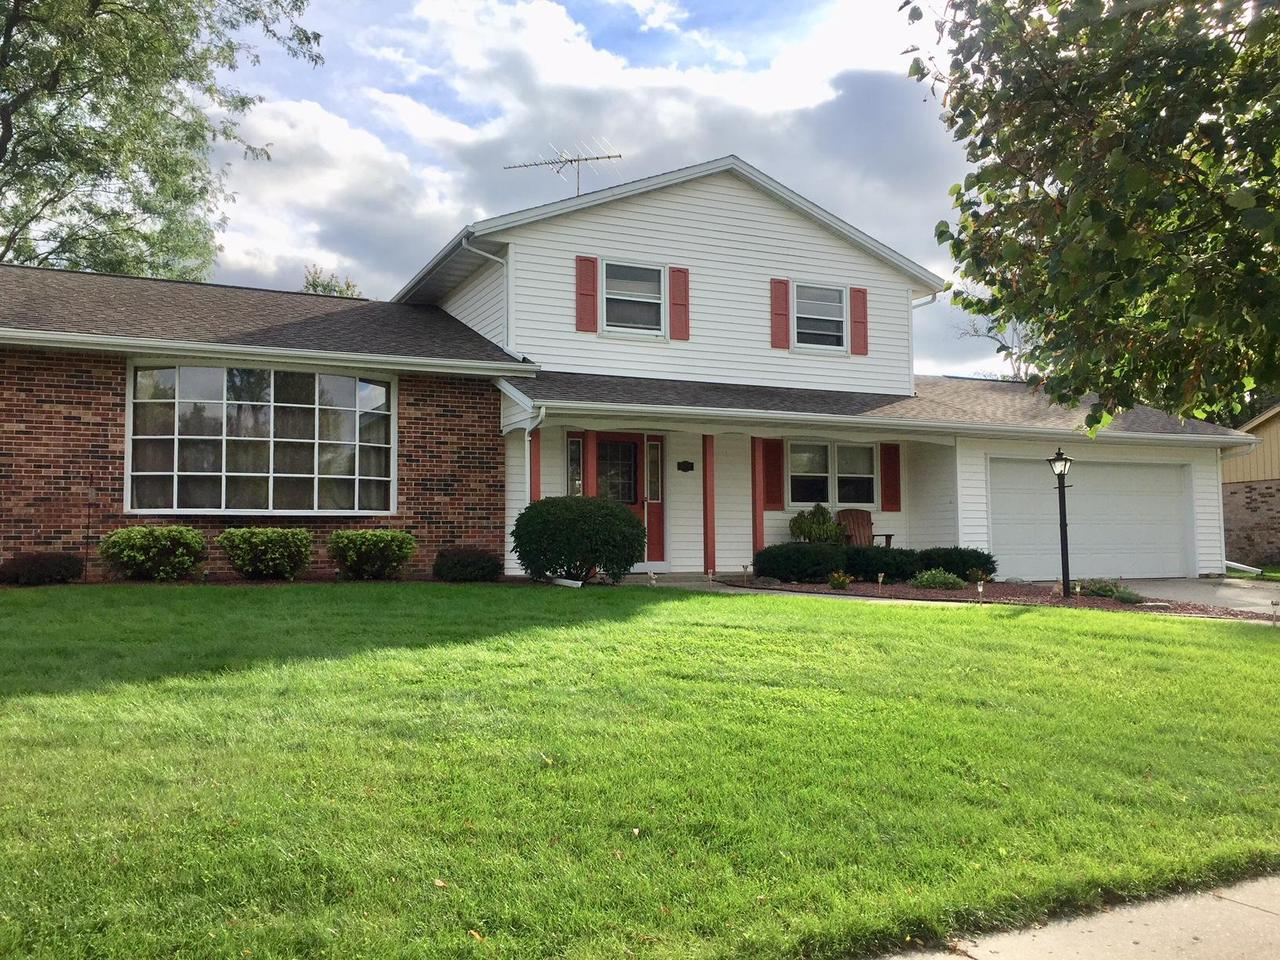 Incredibly well maintained 4 BR home is located close to schools and features a nearly 1/3 acre private yard that is nicely landscaped!  Beautiful updates include newer LWF's in the LR!  FR features a NFP and patio door to backyard patio!  Spacious kitchen has nice cabinets, LWF's, a huge pantry and a nice size dining area with patio door leading to deck with built in benches!  A first floor laundry with door to backyard and a fourth BR/den are also on the main level.  Finished LL Rec Rm is nicely done with recessed lights and built in entertainment area.  Upstairs you'll find a huge MBR w/split style bath/dressing area.  BR2 and BR3 are also nice size!  Garage w/extra doors to the back for easy access for tractor!  Beautiful patio and deck!  Nicely landscaped and updated!  Must see!